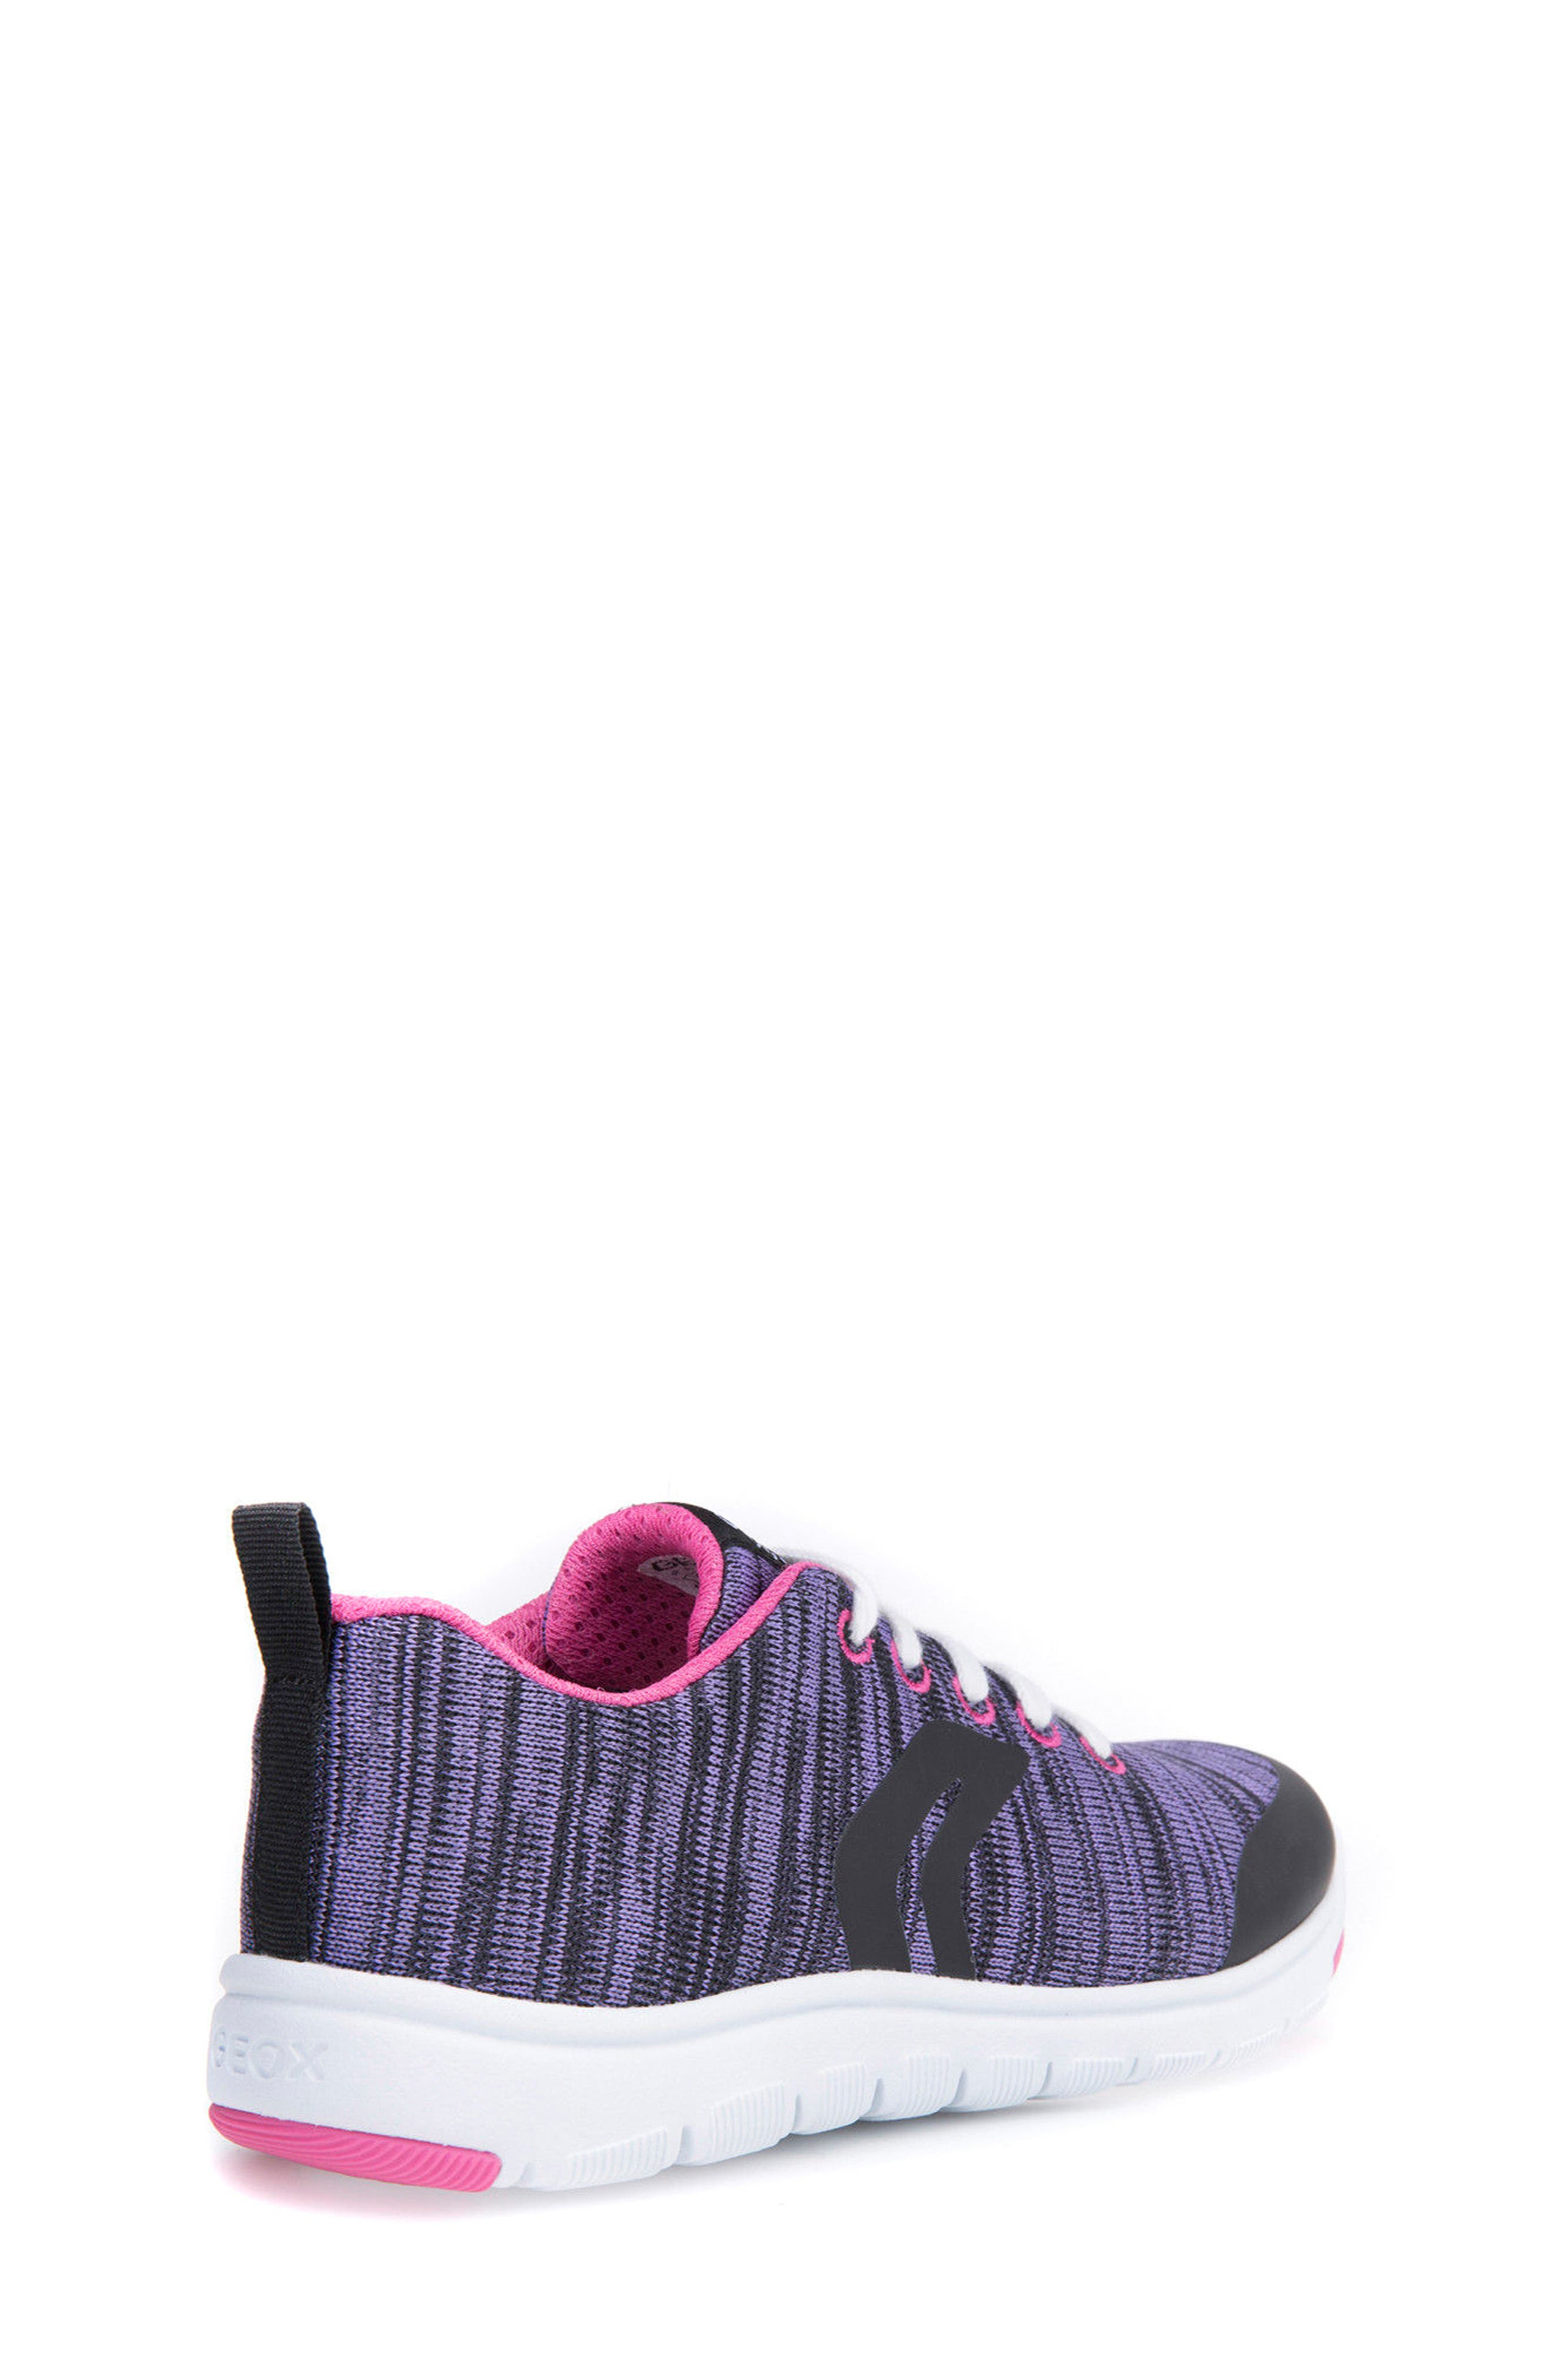 Xunday Performance Knit Low Top Sneaker,                             Alternate thumbnail 2, color,                             574